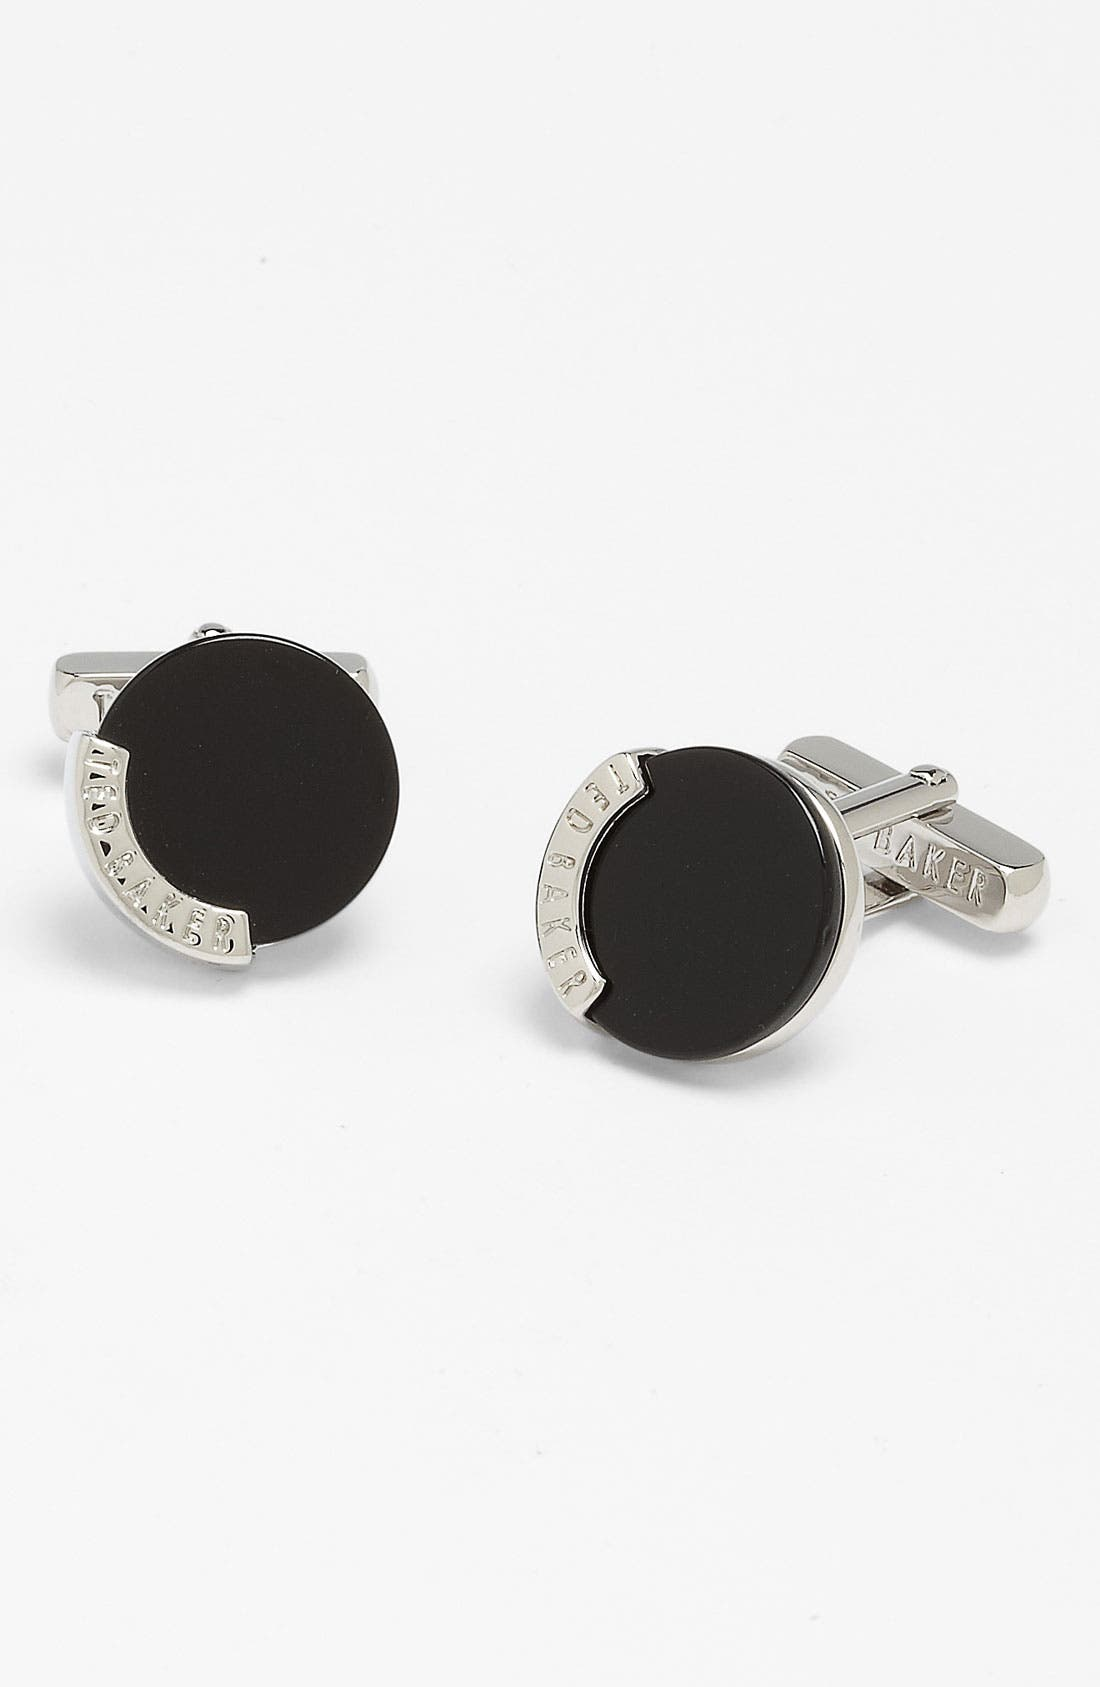 Main Image - Ted Baker London 'Galaxx' Cuff Links